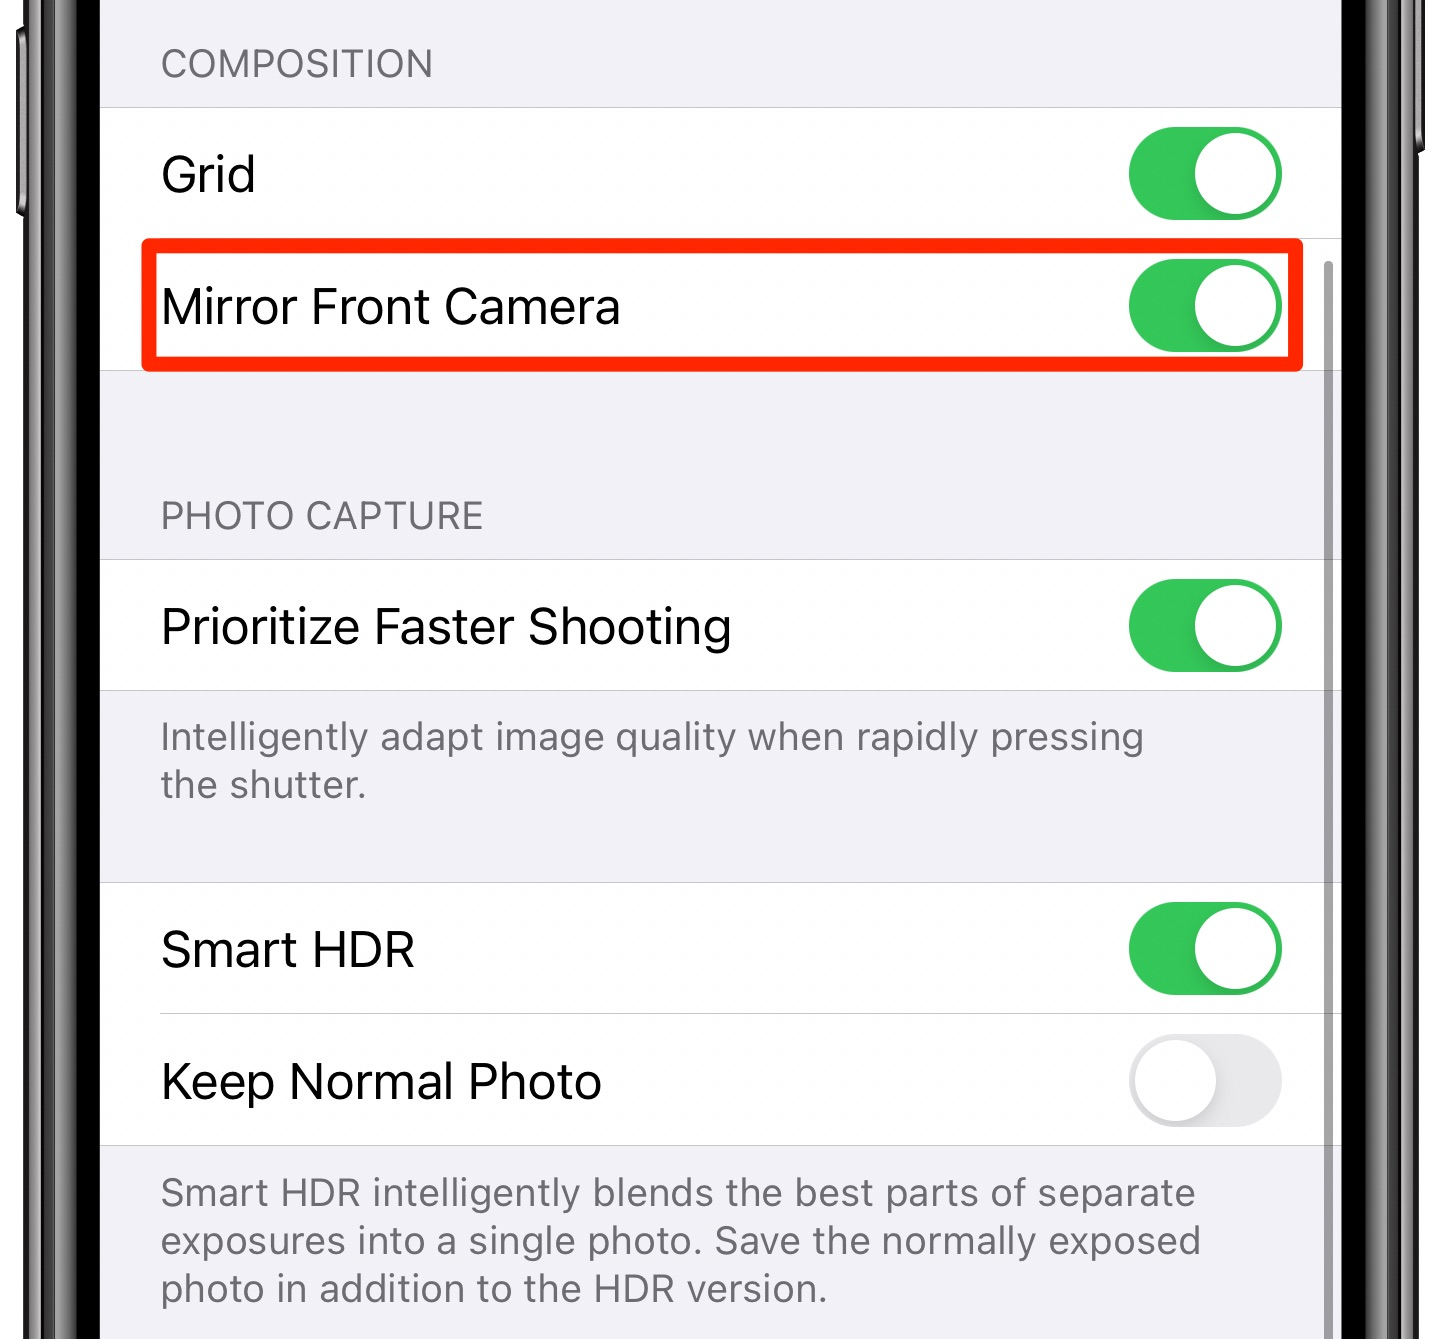 Mirrored iPhone selfies - the Mirror Front Camera option enabled and highlighted in Camera settings